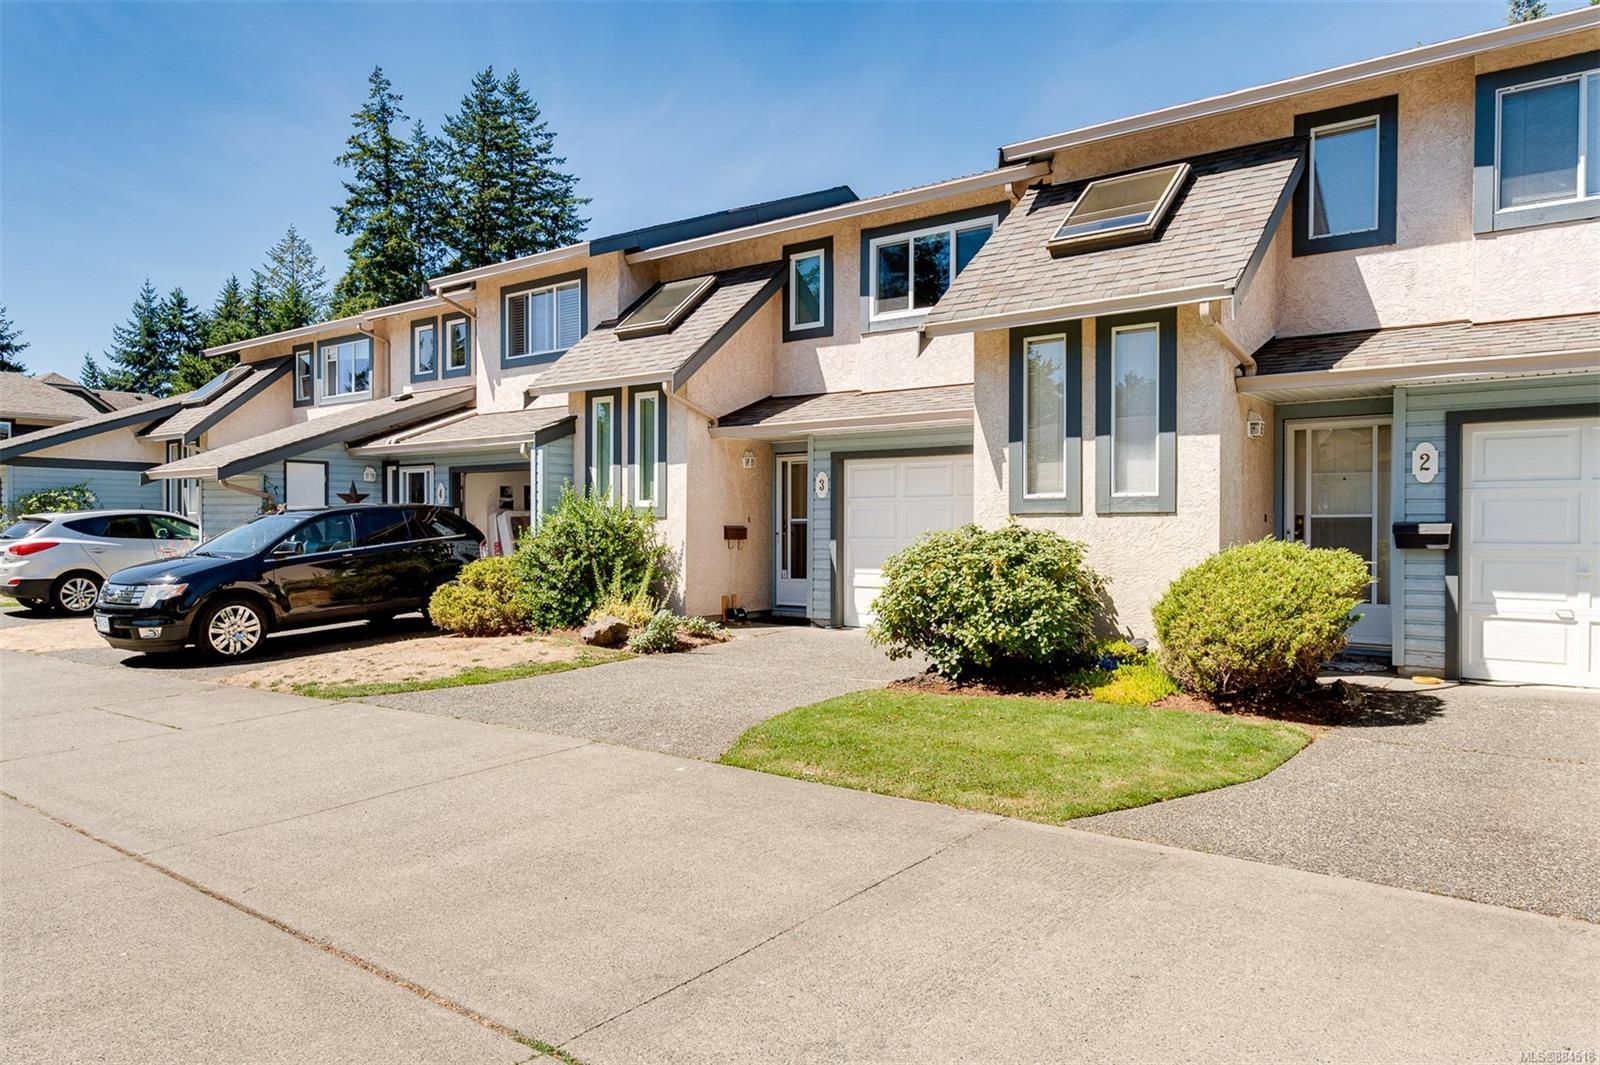 Main Photo: 3 515 Mount View Ave in : Co Hatley Park Row/Townhouse for sale (Colwood)  : MLS®# 884518